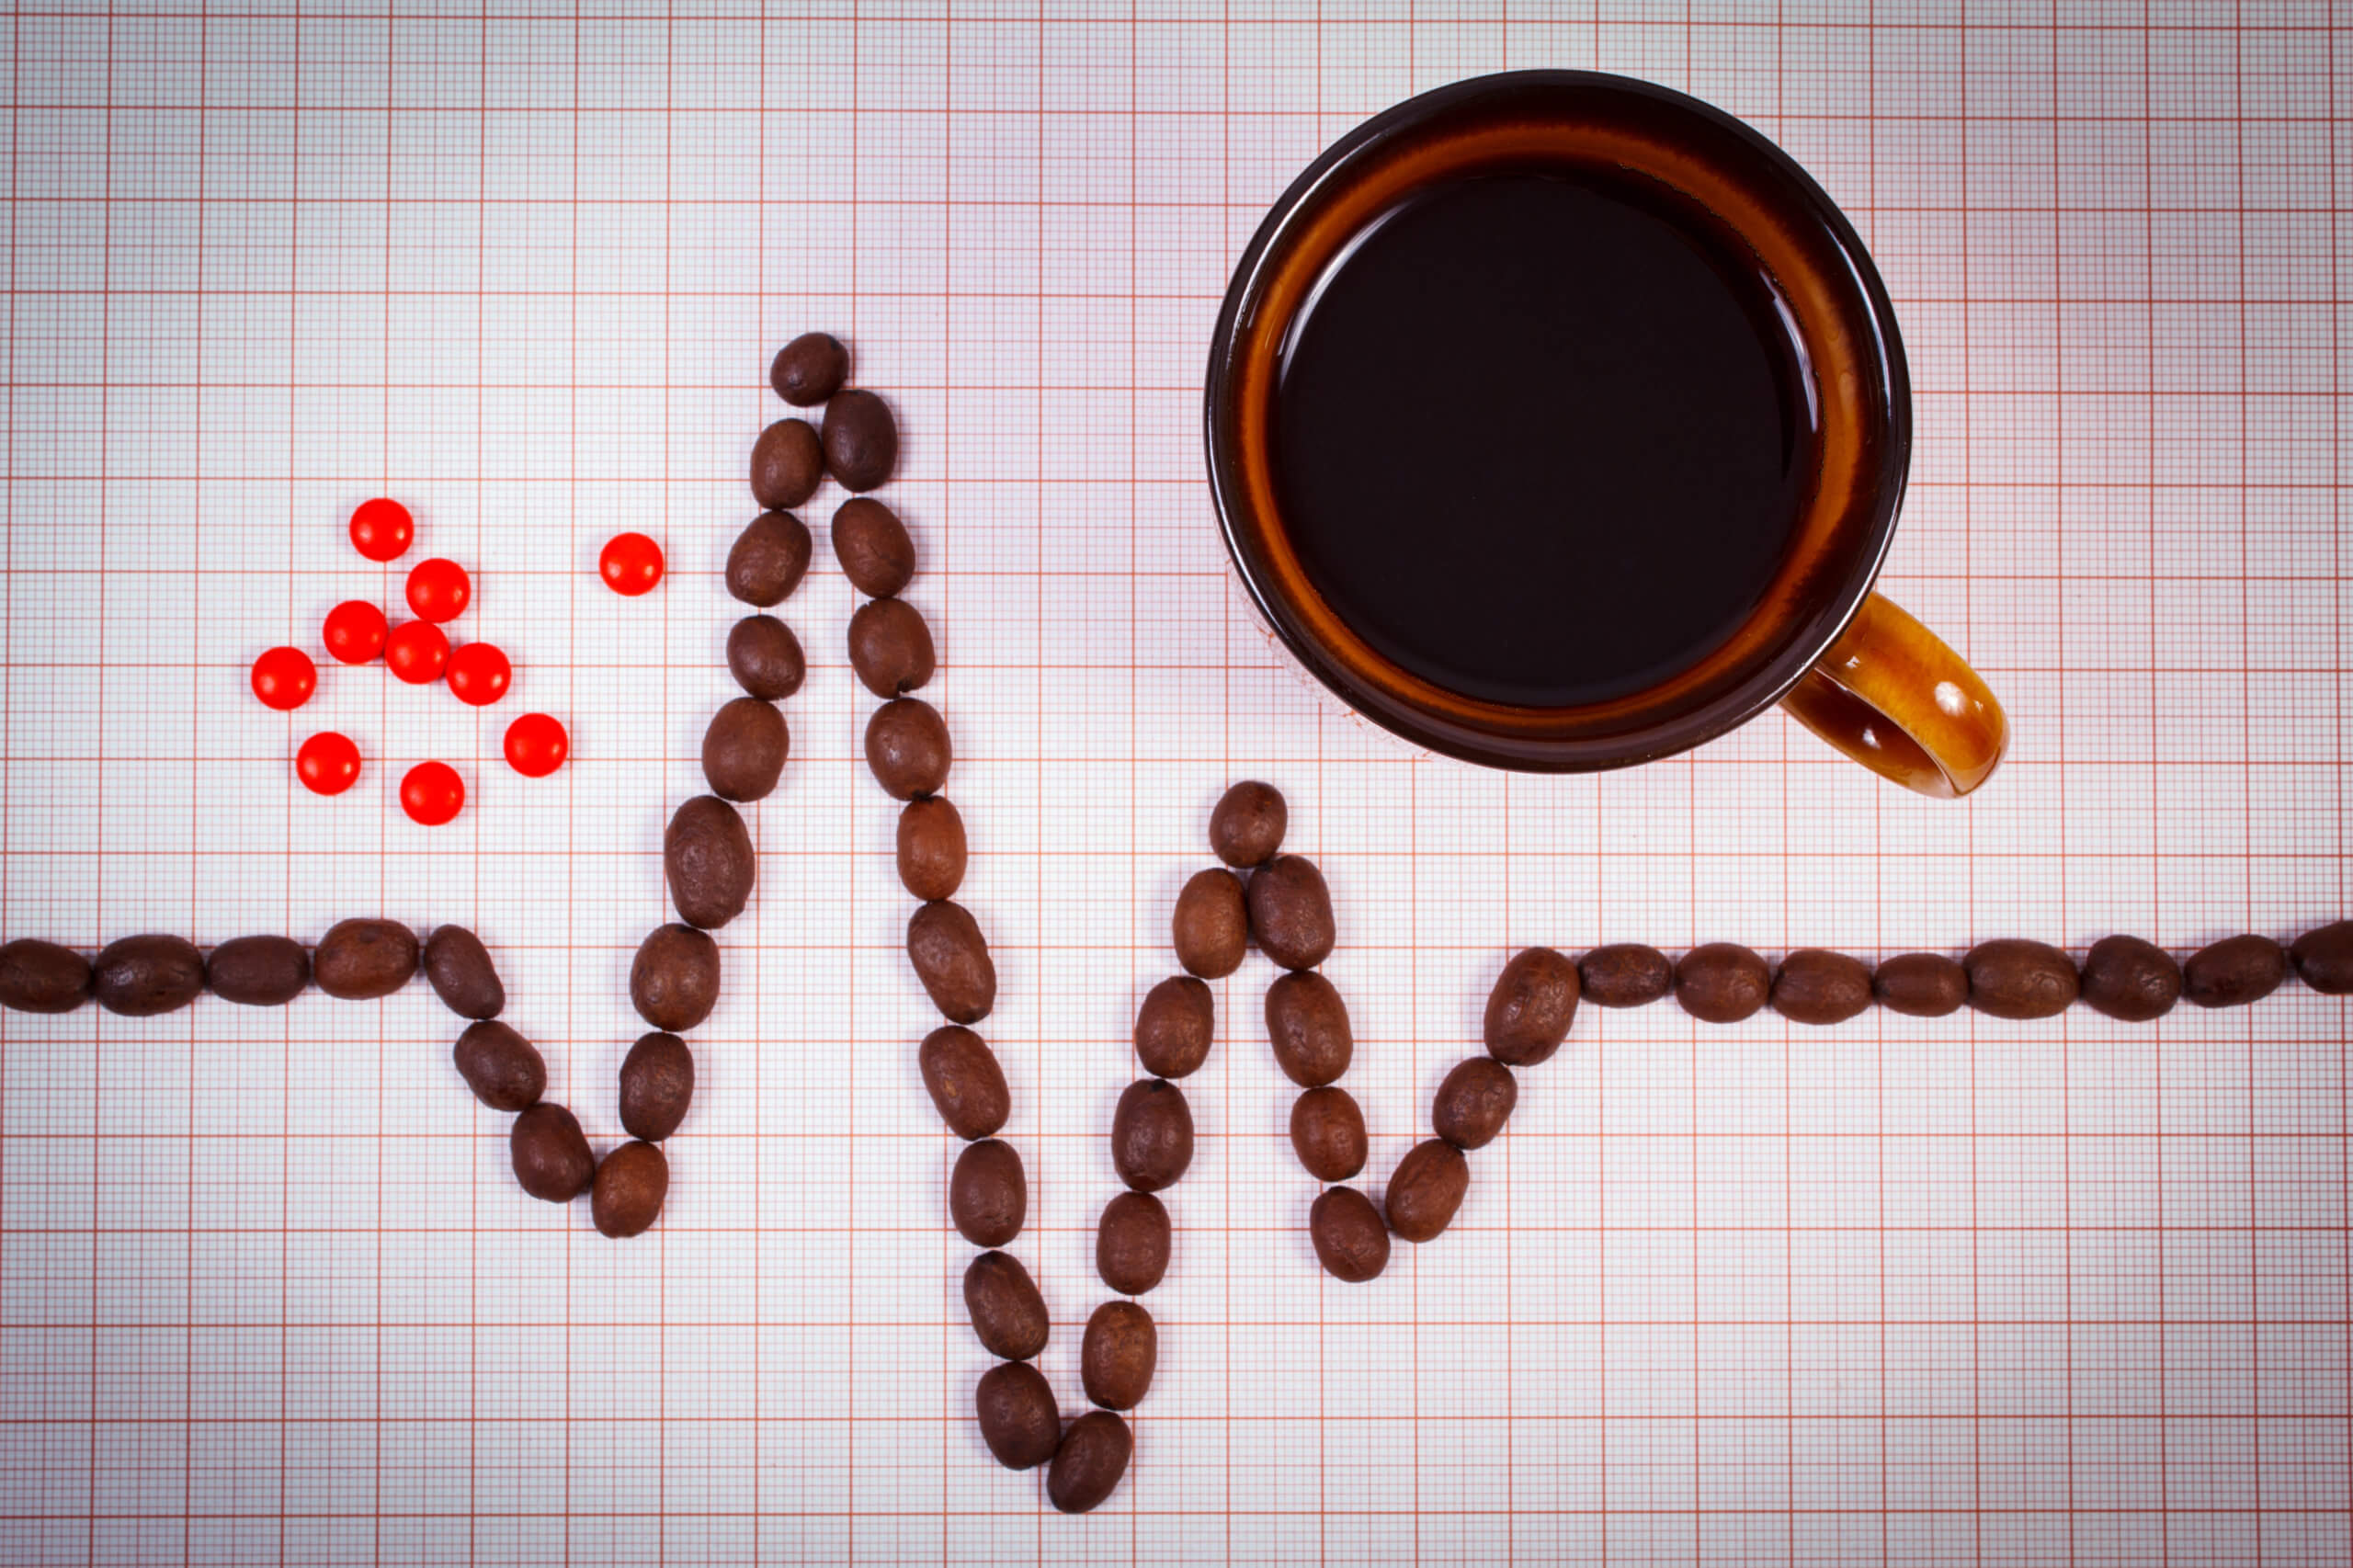 Cardiogram Line of Coffee Grains and a Cup of Coffee